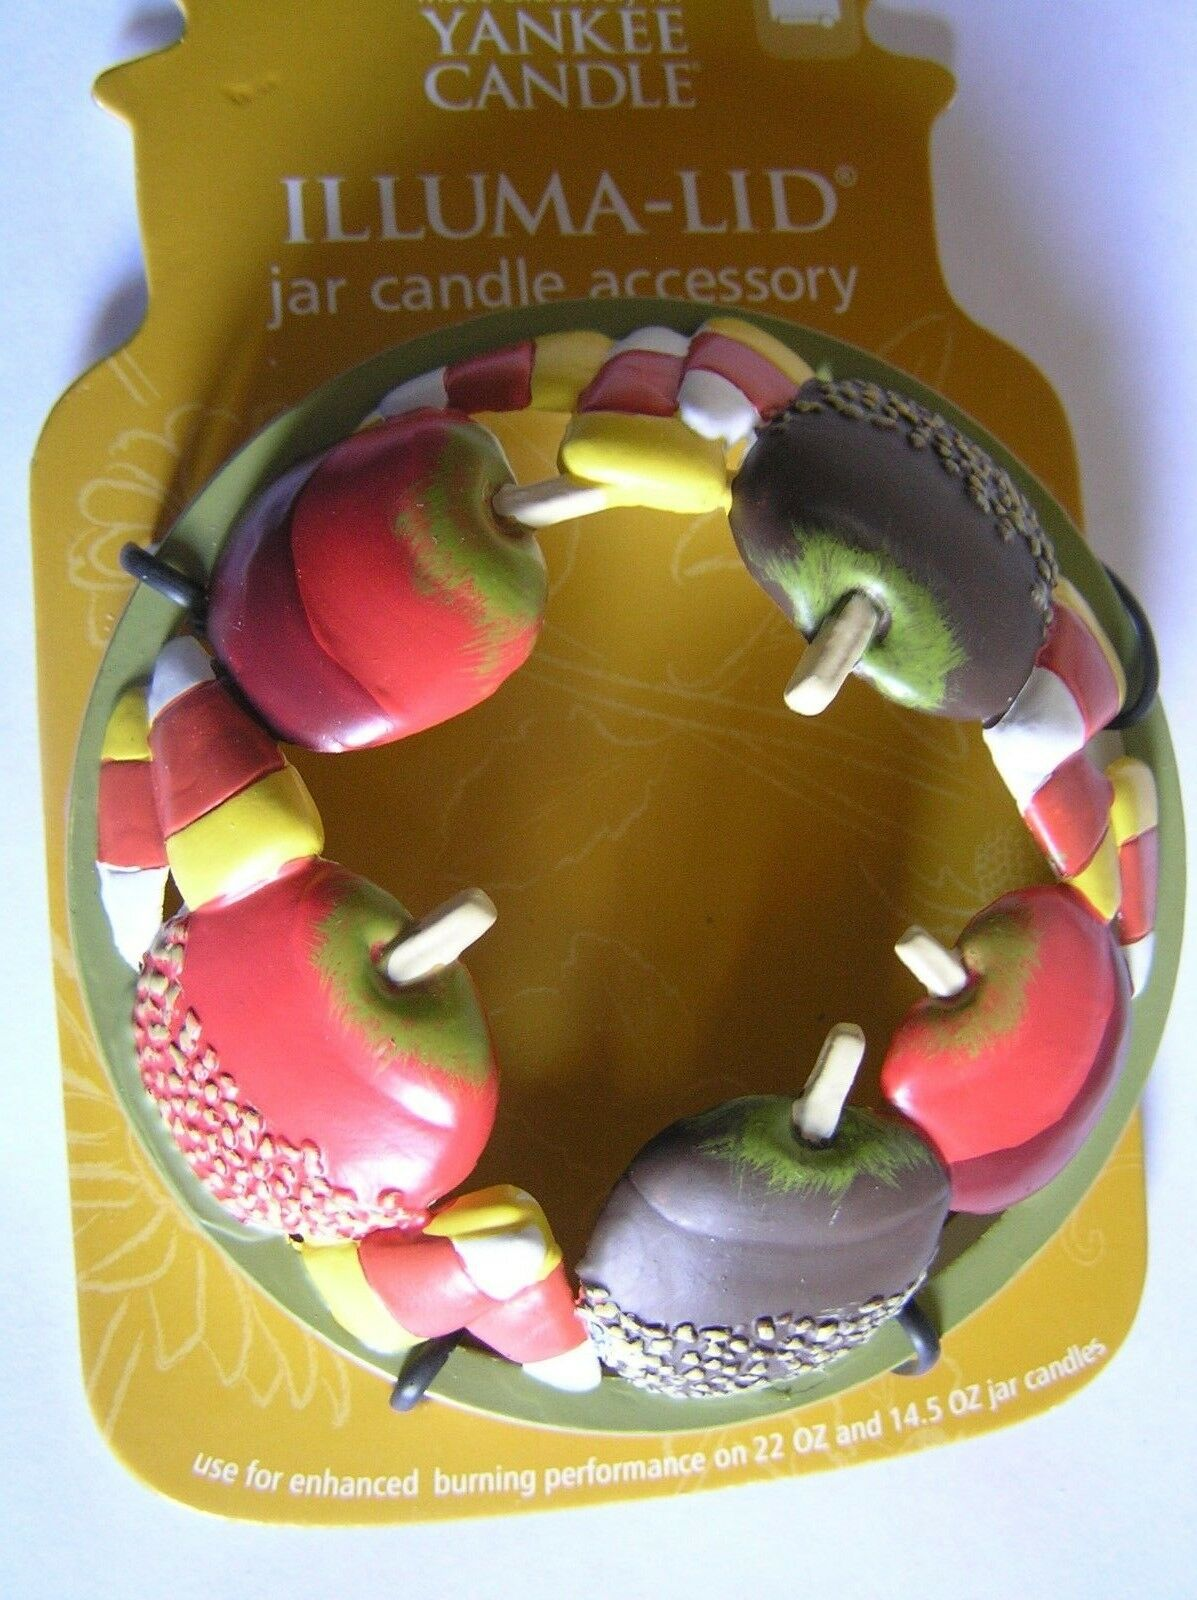 Yankee Candle Halloween Candy Apples Corn Illuma Lid Topper New Free Shipping